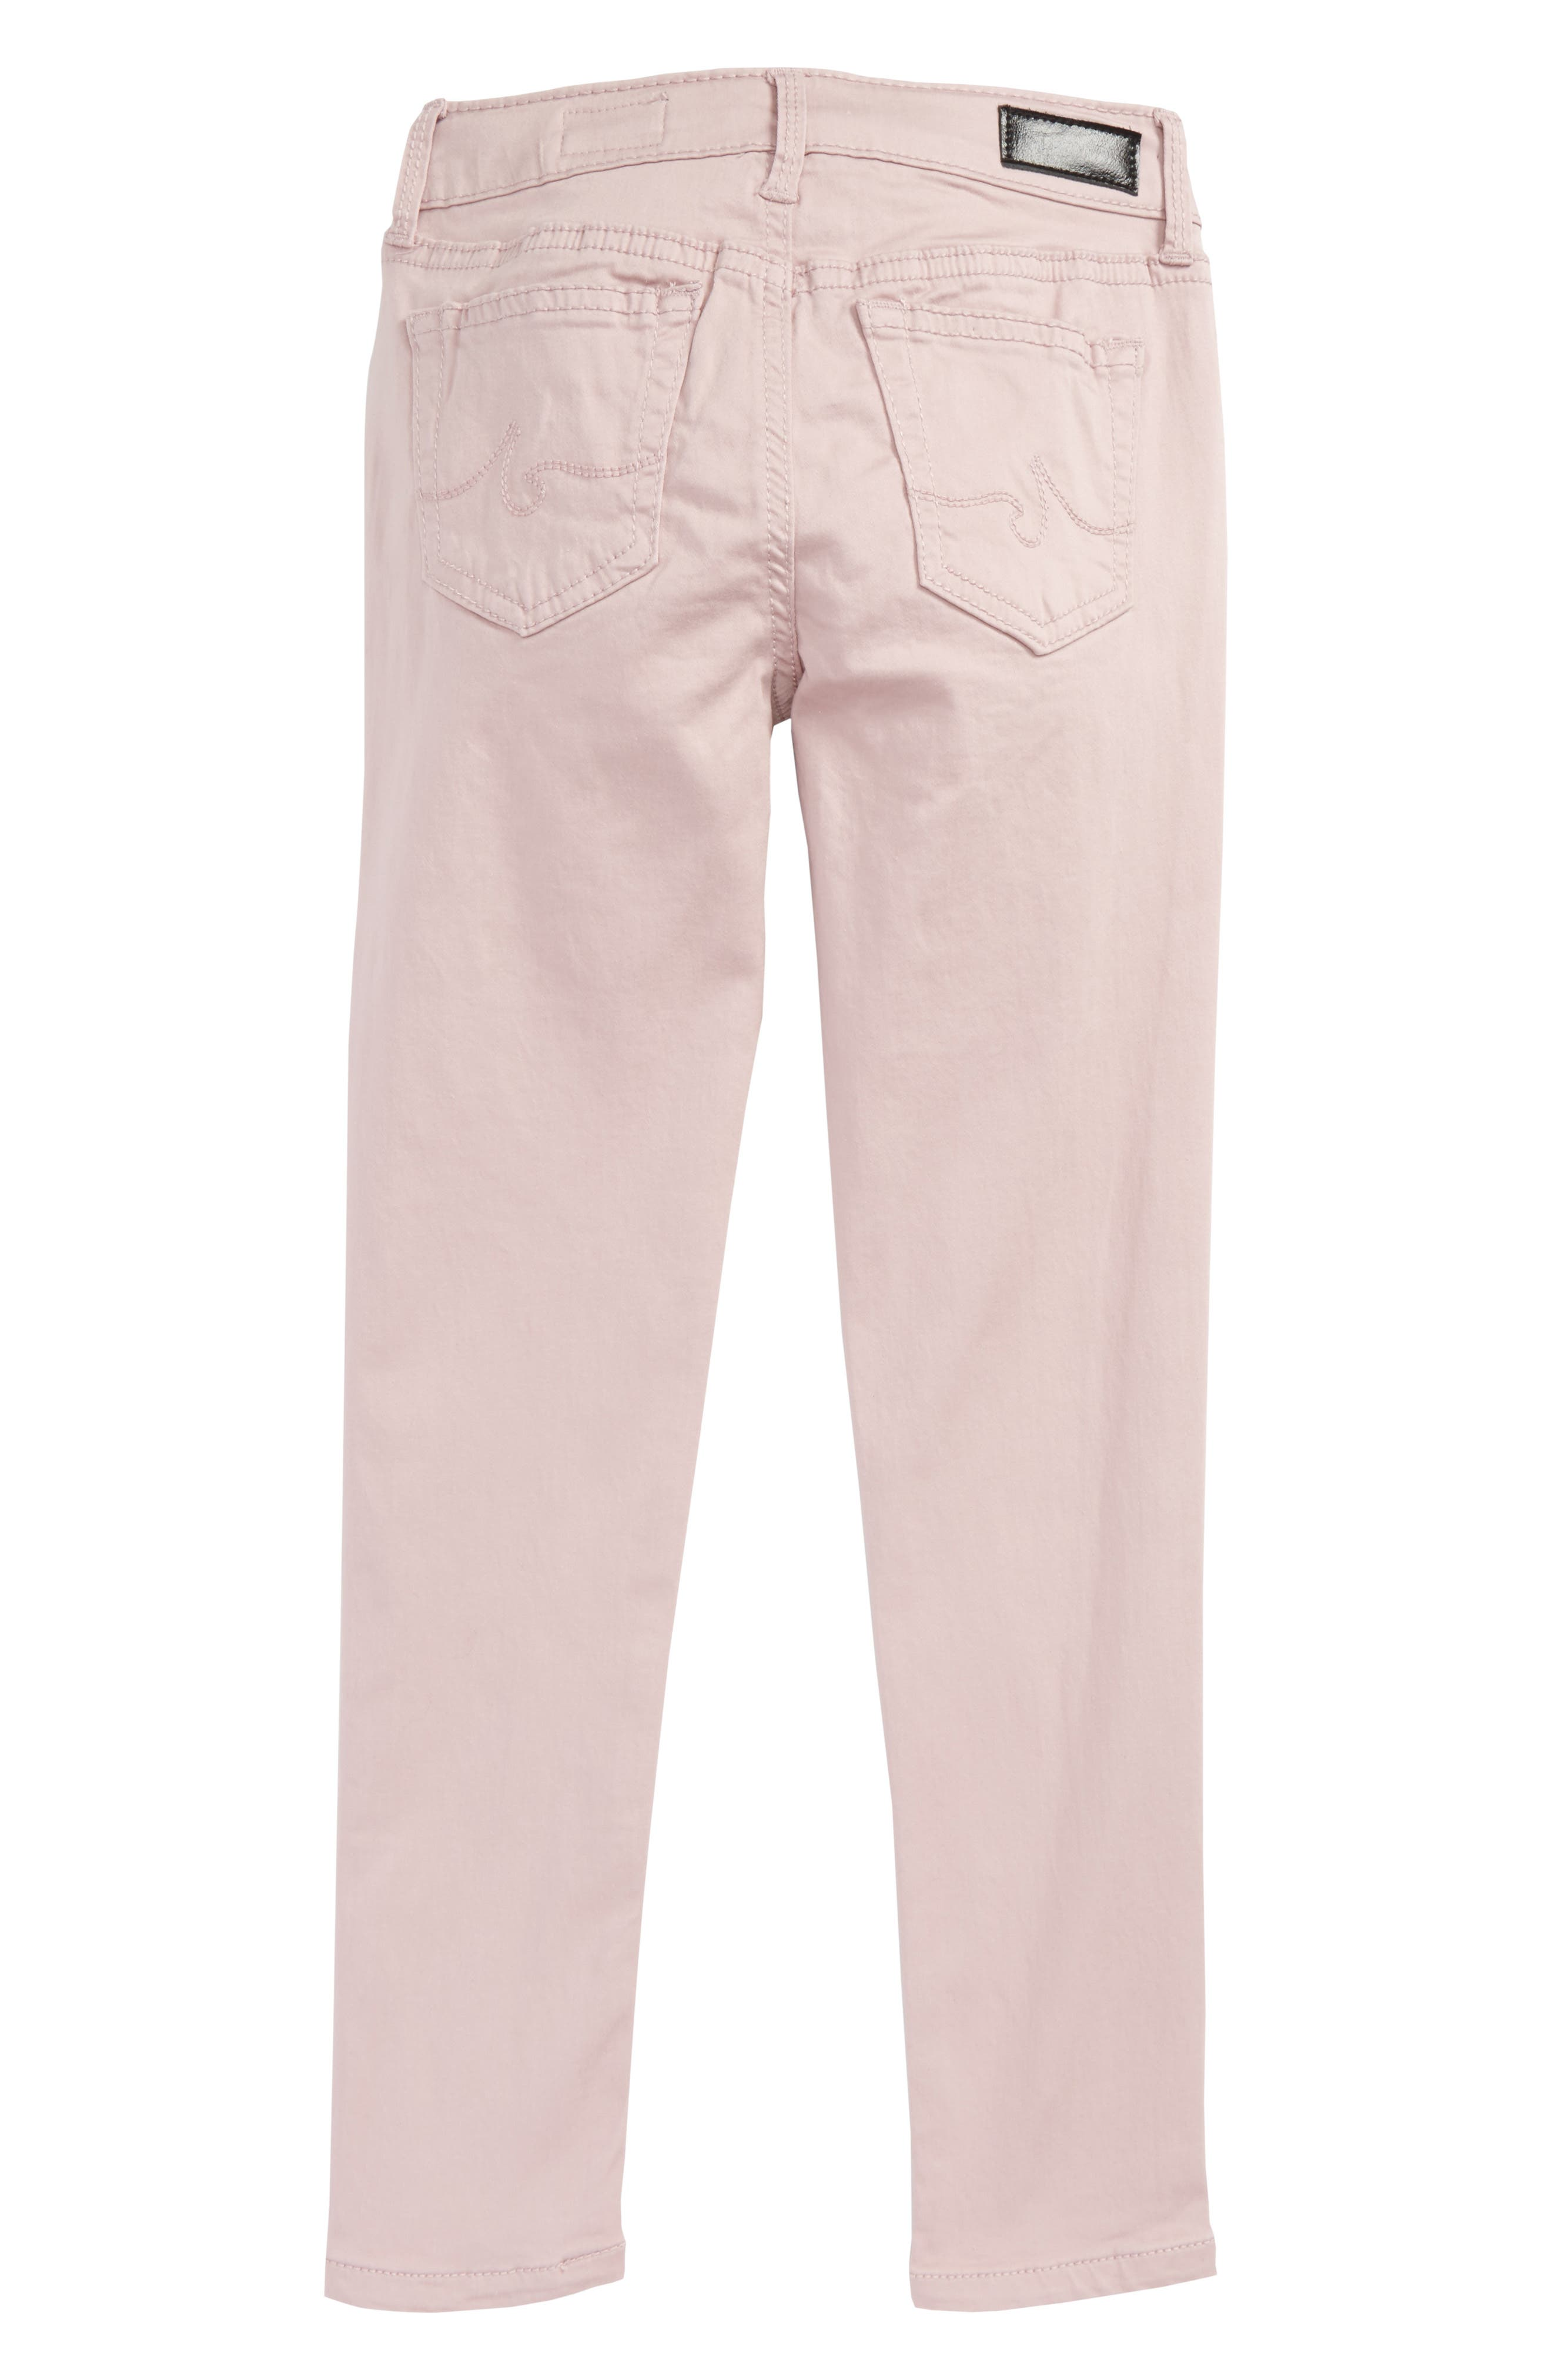 Alternate Image 2  - ag adriano goldschmied kids Twiggy Luxe Ankle Skinny Jeans (Toddler Girls & Little Girls)